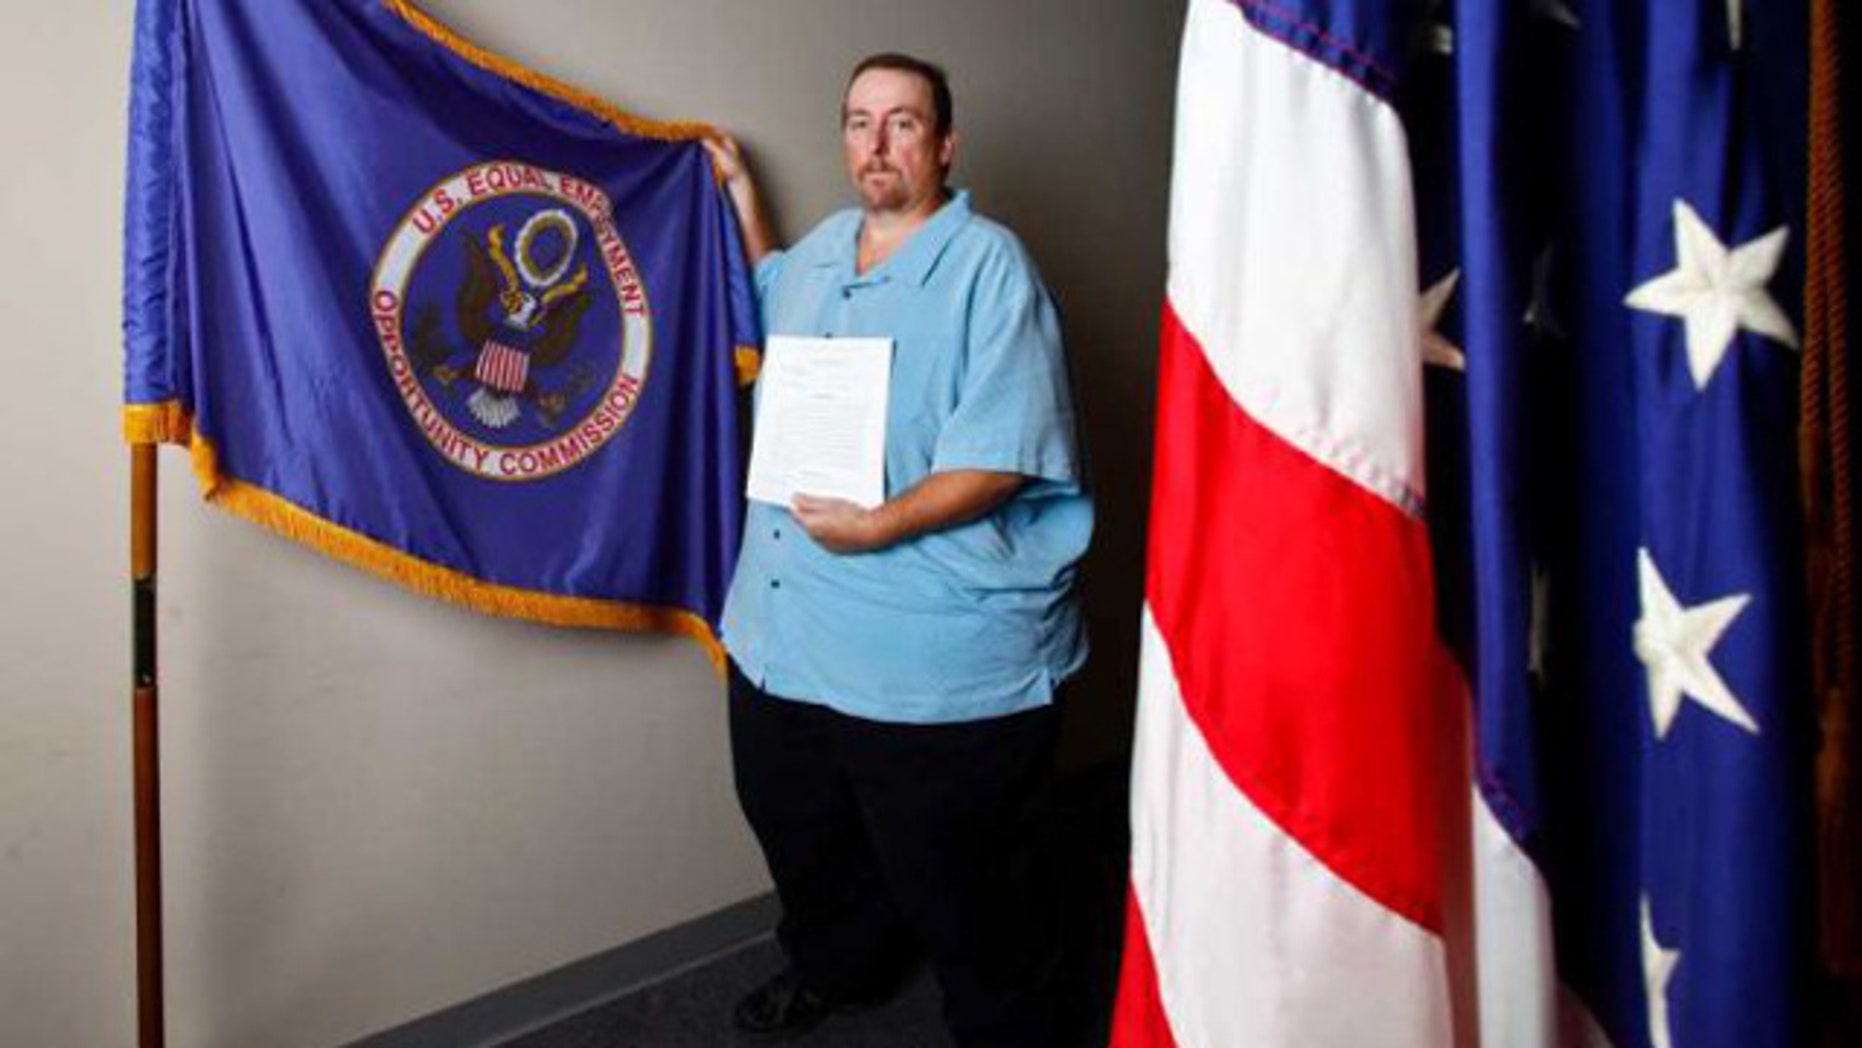 Ronald Kratz insists his weight did not interfere with his ability to perform his job duties as a parts sorter. His employer determined that it did.